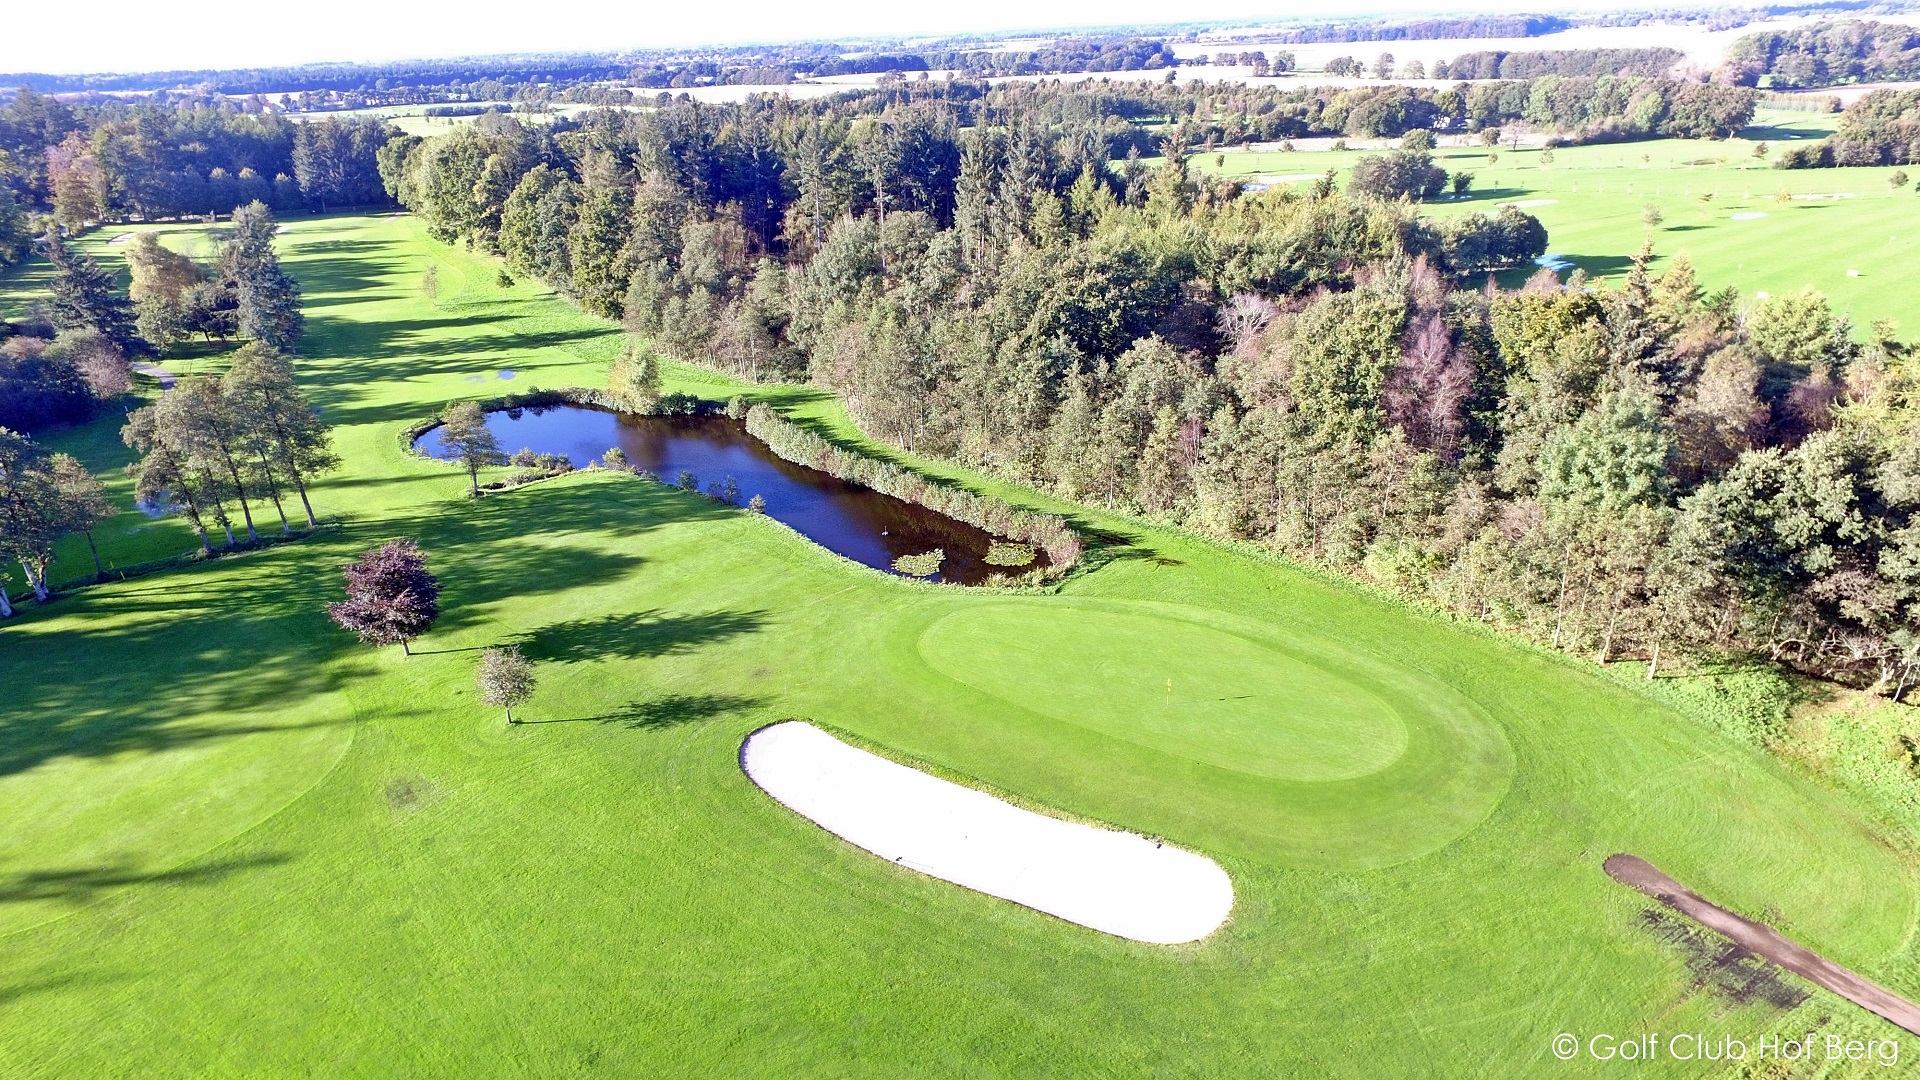 Hof Berg Golf Club